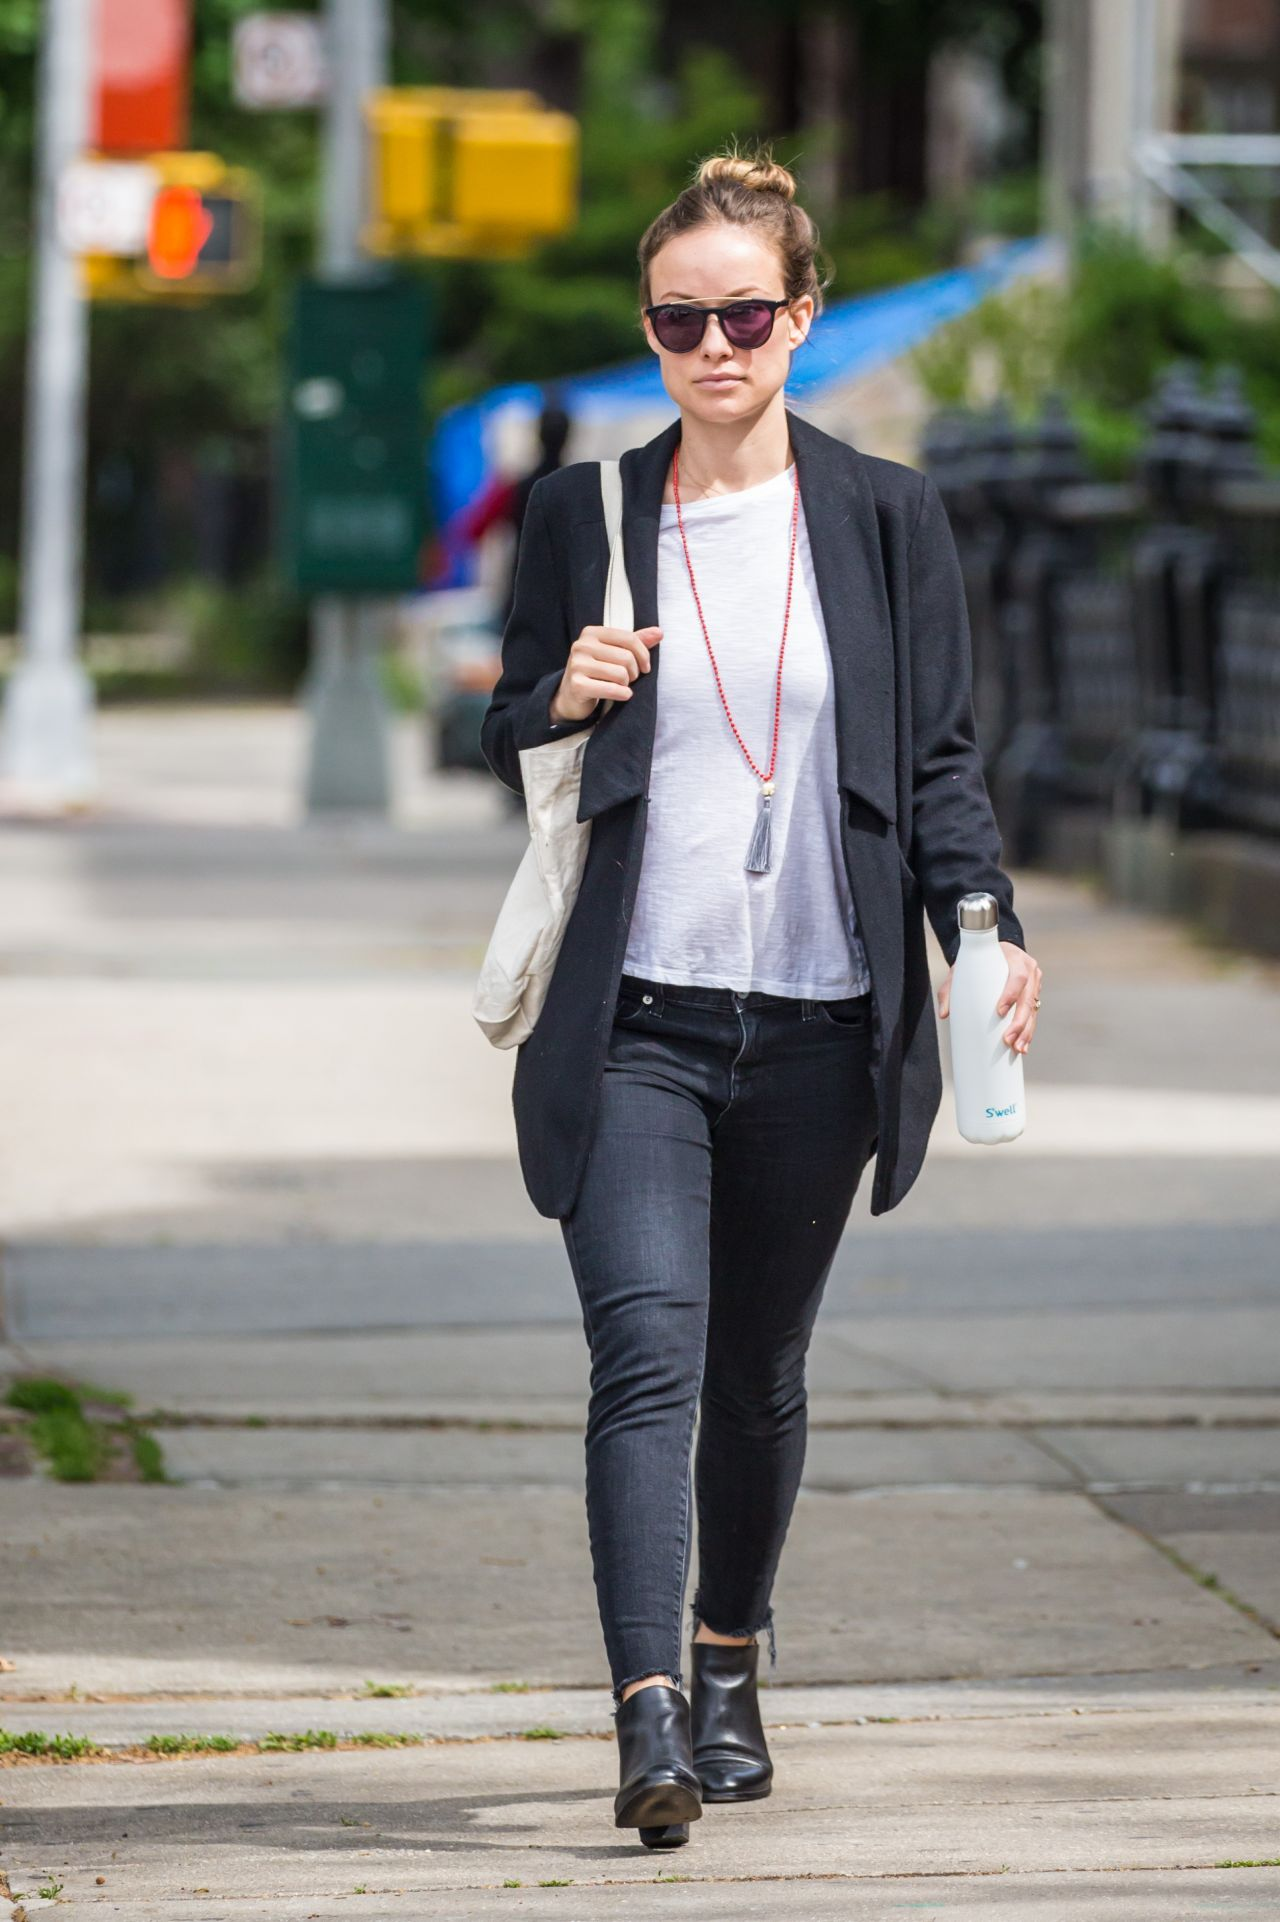 Olivia Wilde Office Chic Outfit Out In New York City 5